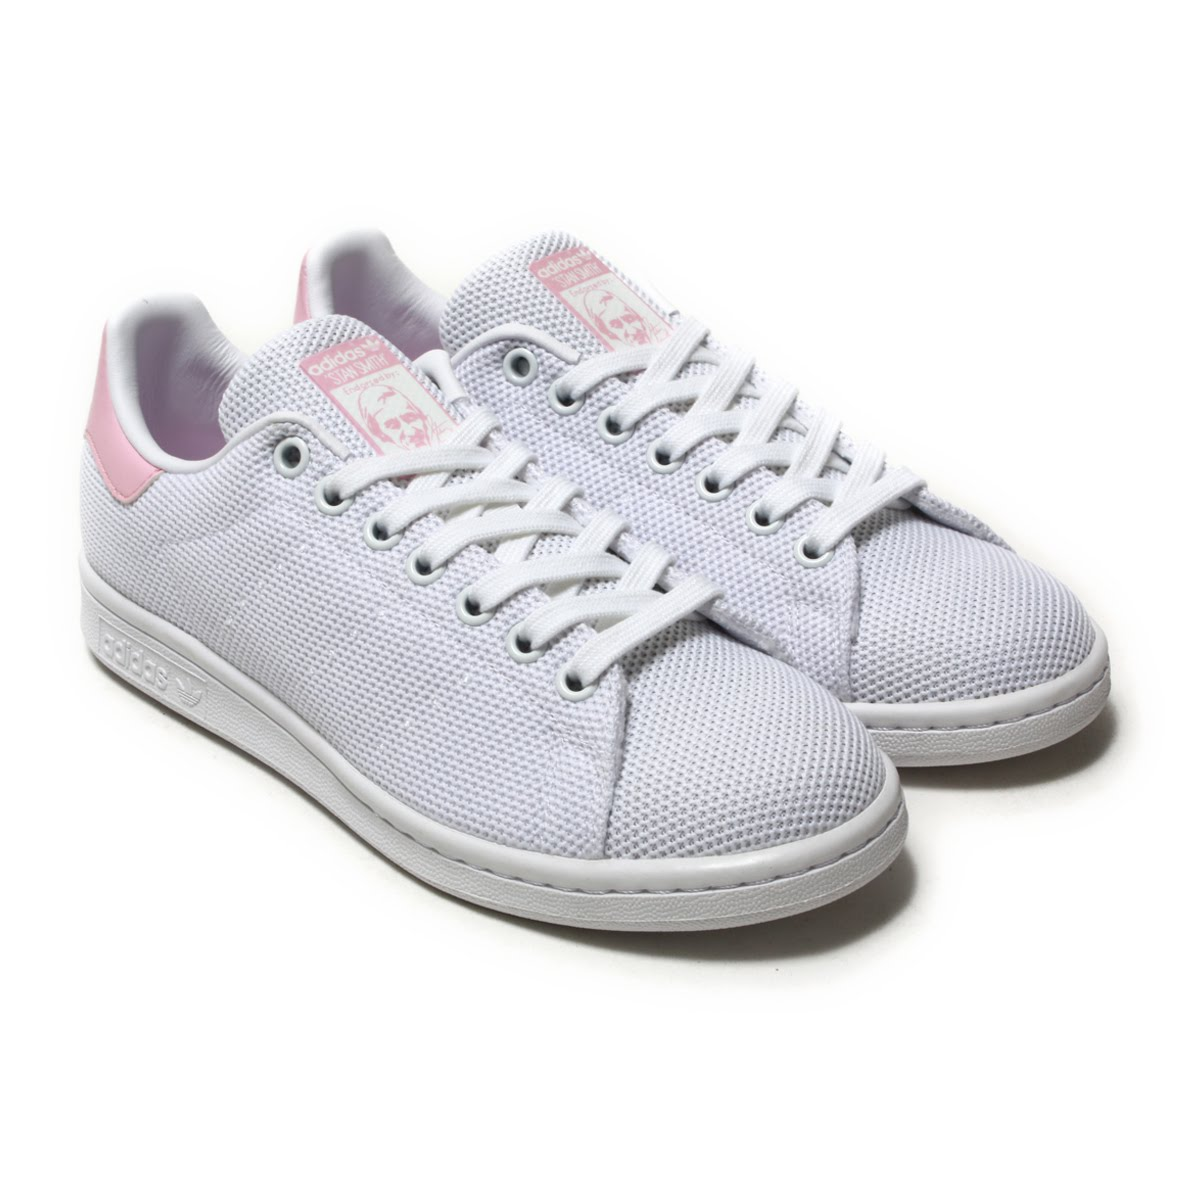 stan smith shoes gray pink